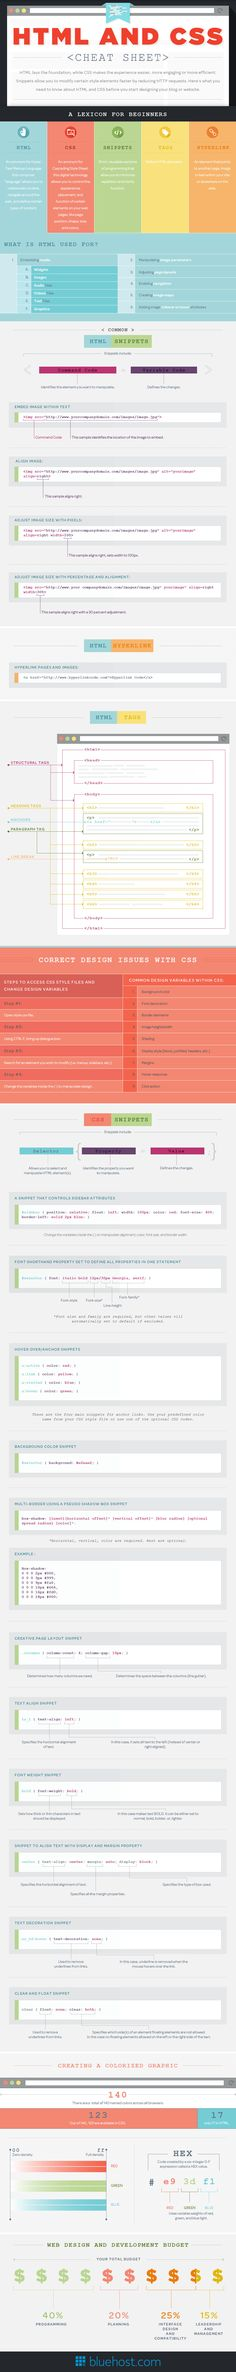 Infographic: HTML And CSS Cheat Sheet - DesignTAXI.com